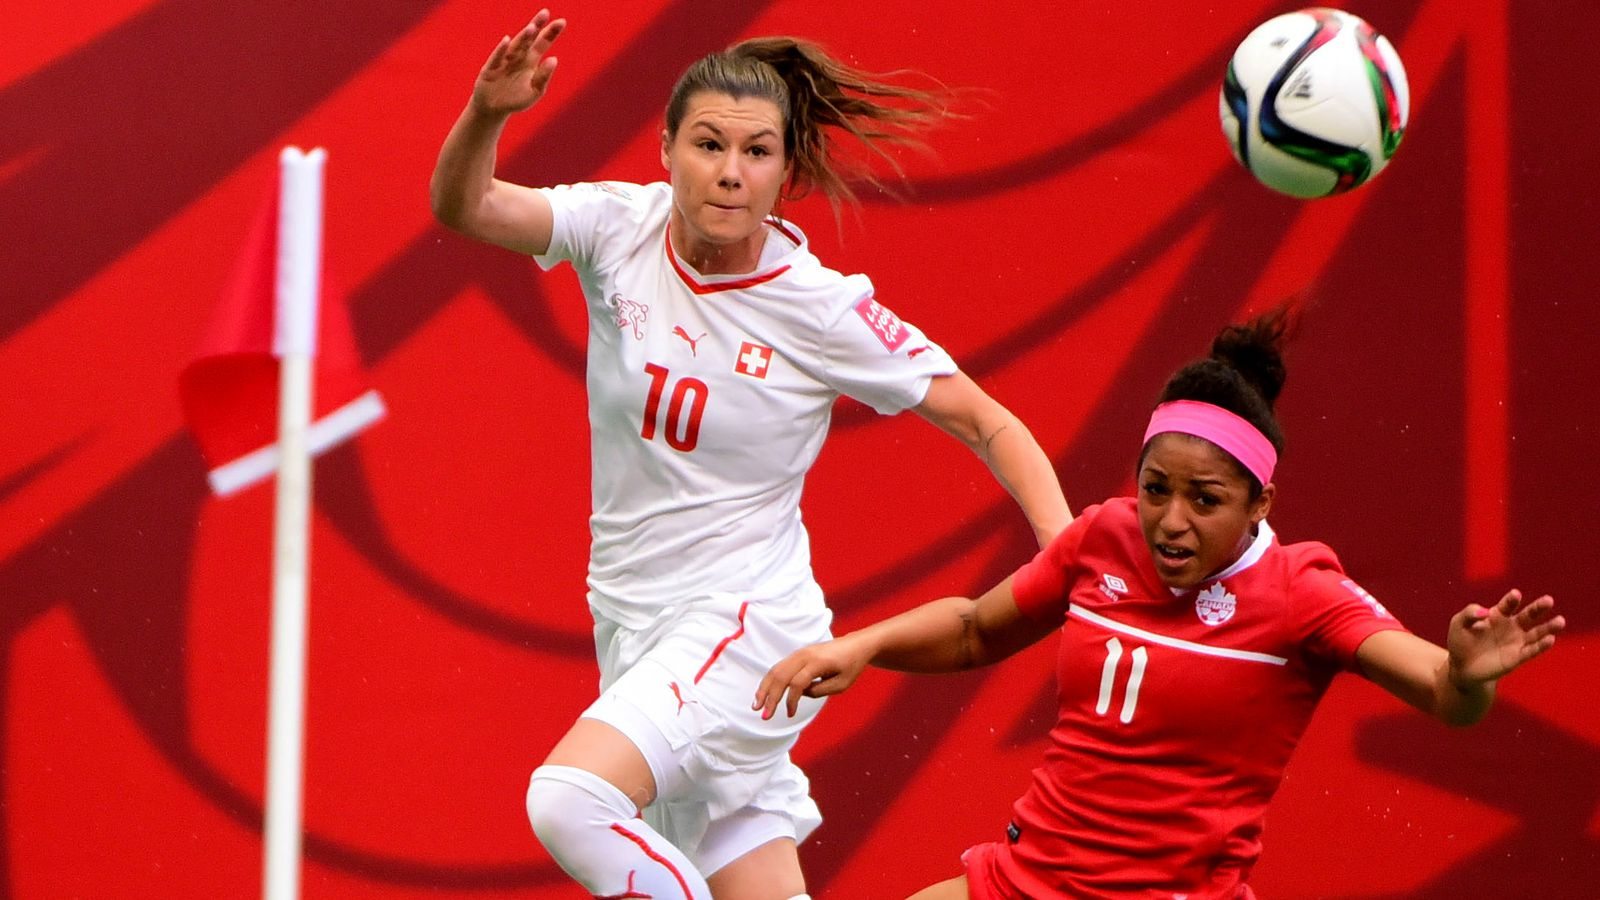 An Obituary For Switzerland The Most Fun Team At The